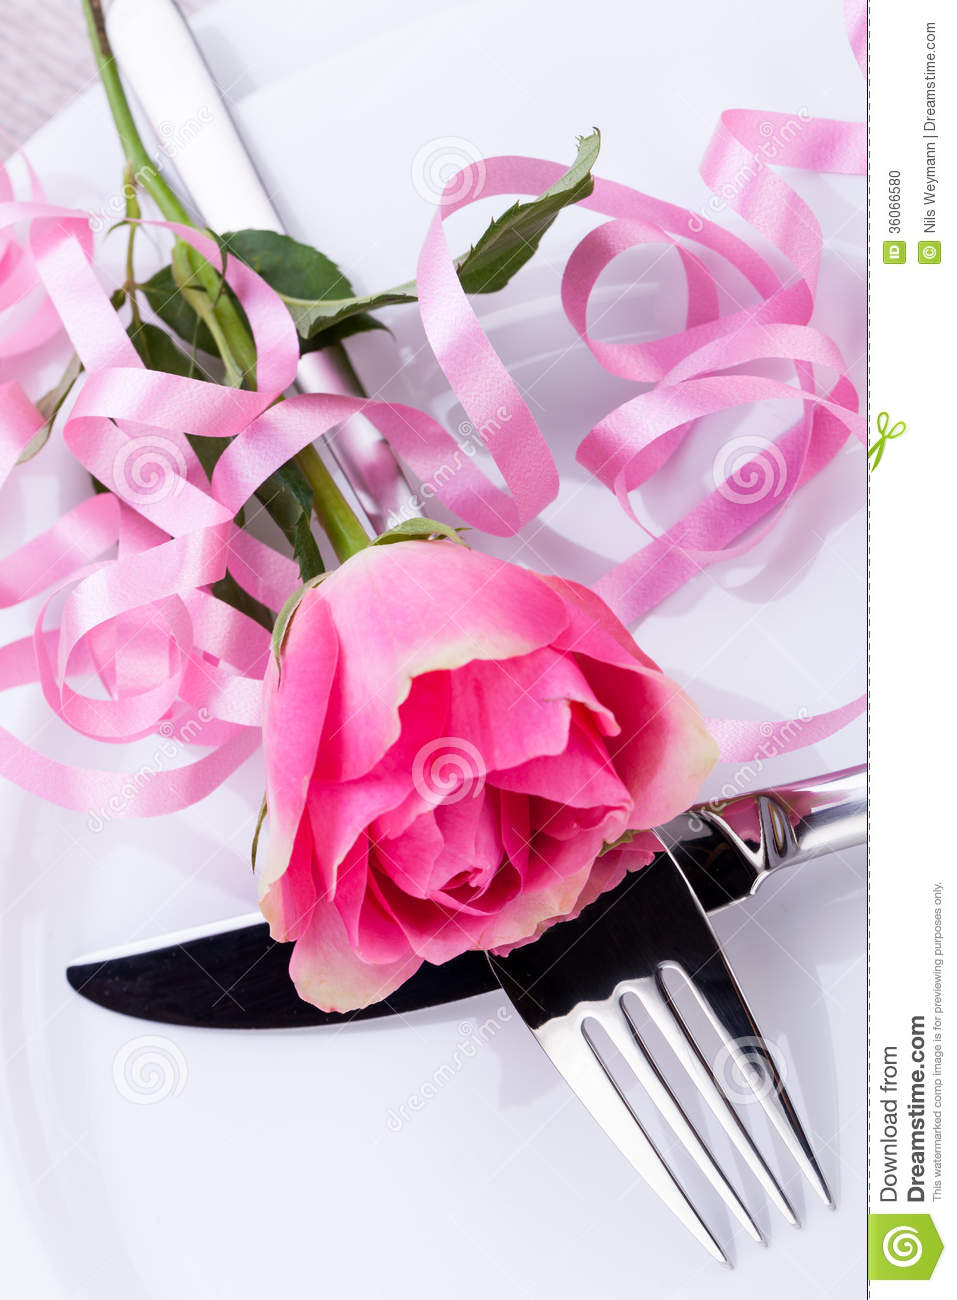 Table Setting With A Single Pink Rose Stock Photo Image